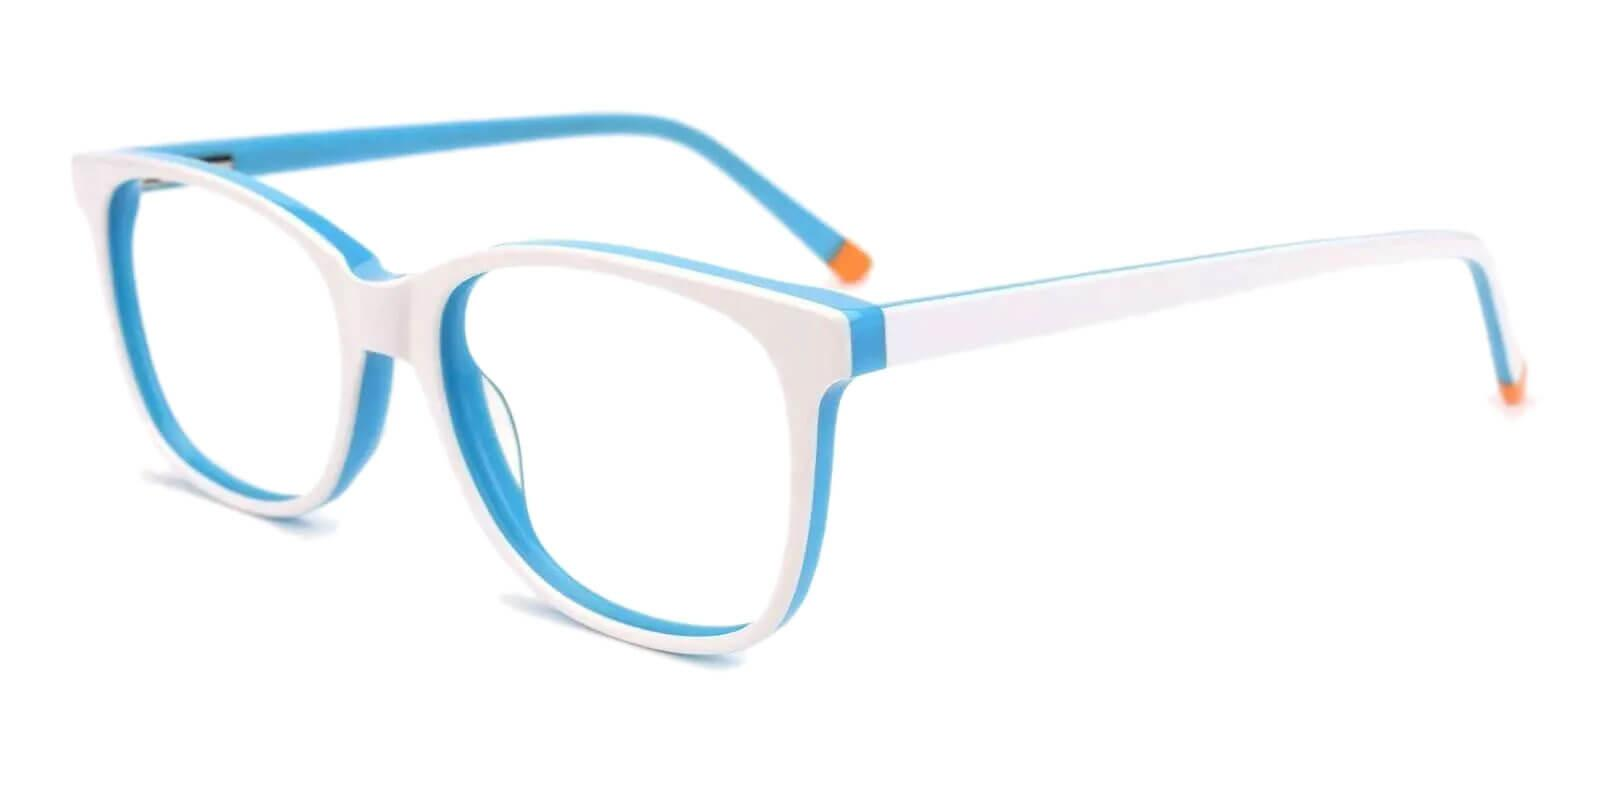 Hibbard White Acetate Eyeglasses , SpringHinges , UniversalBridgeFit Frames from ABBE Glasses